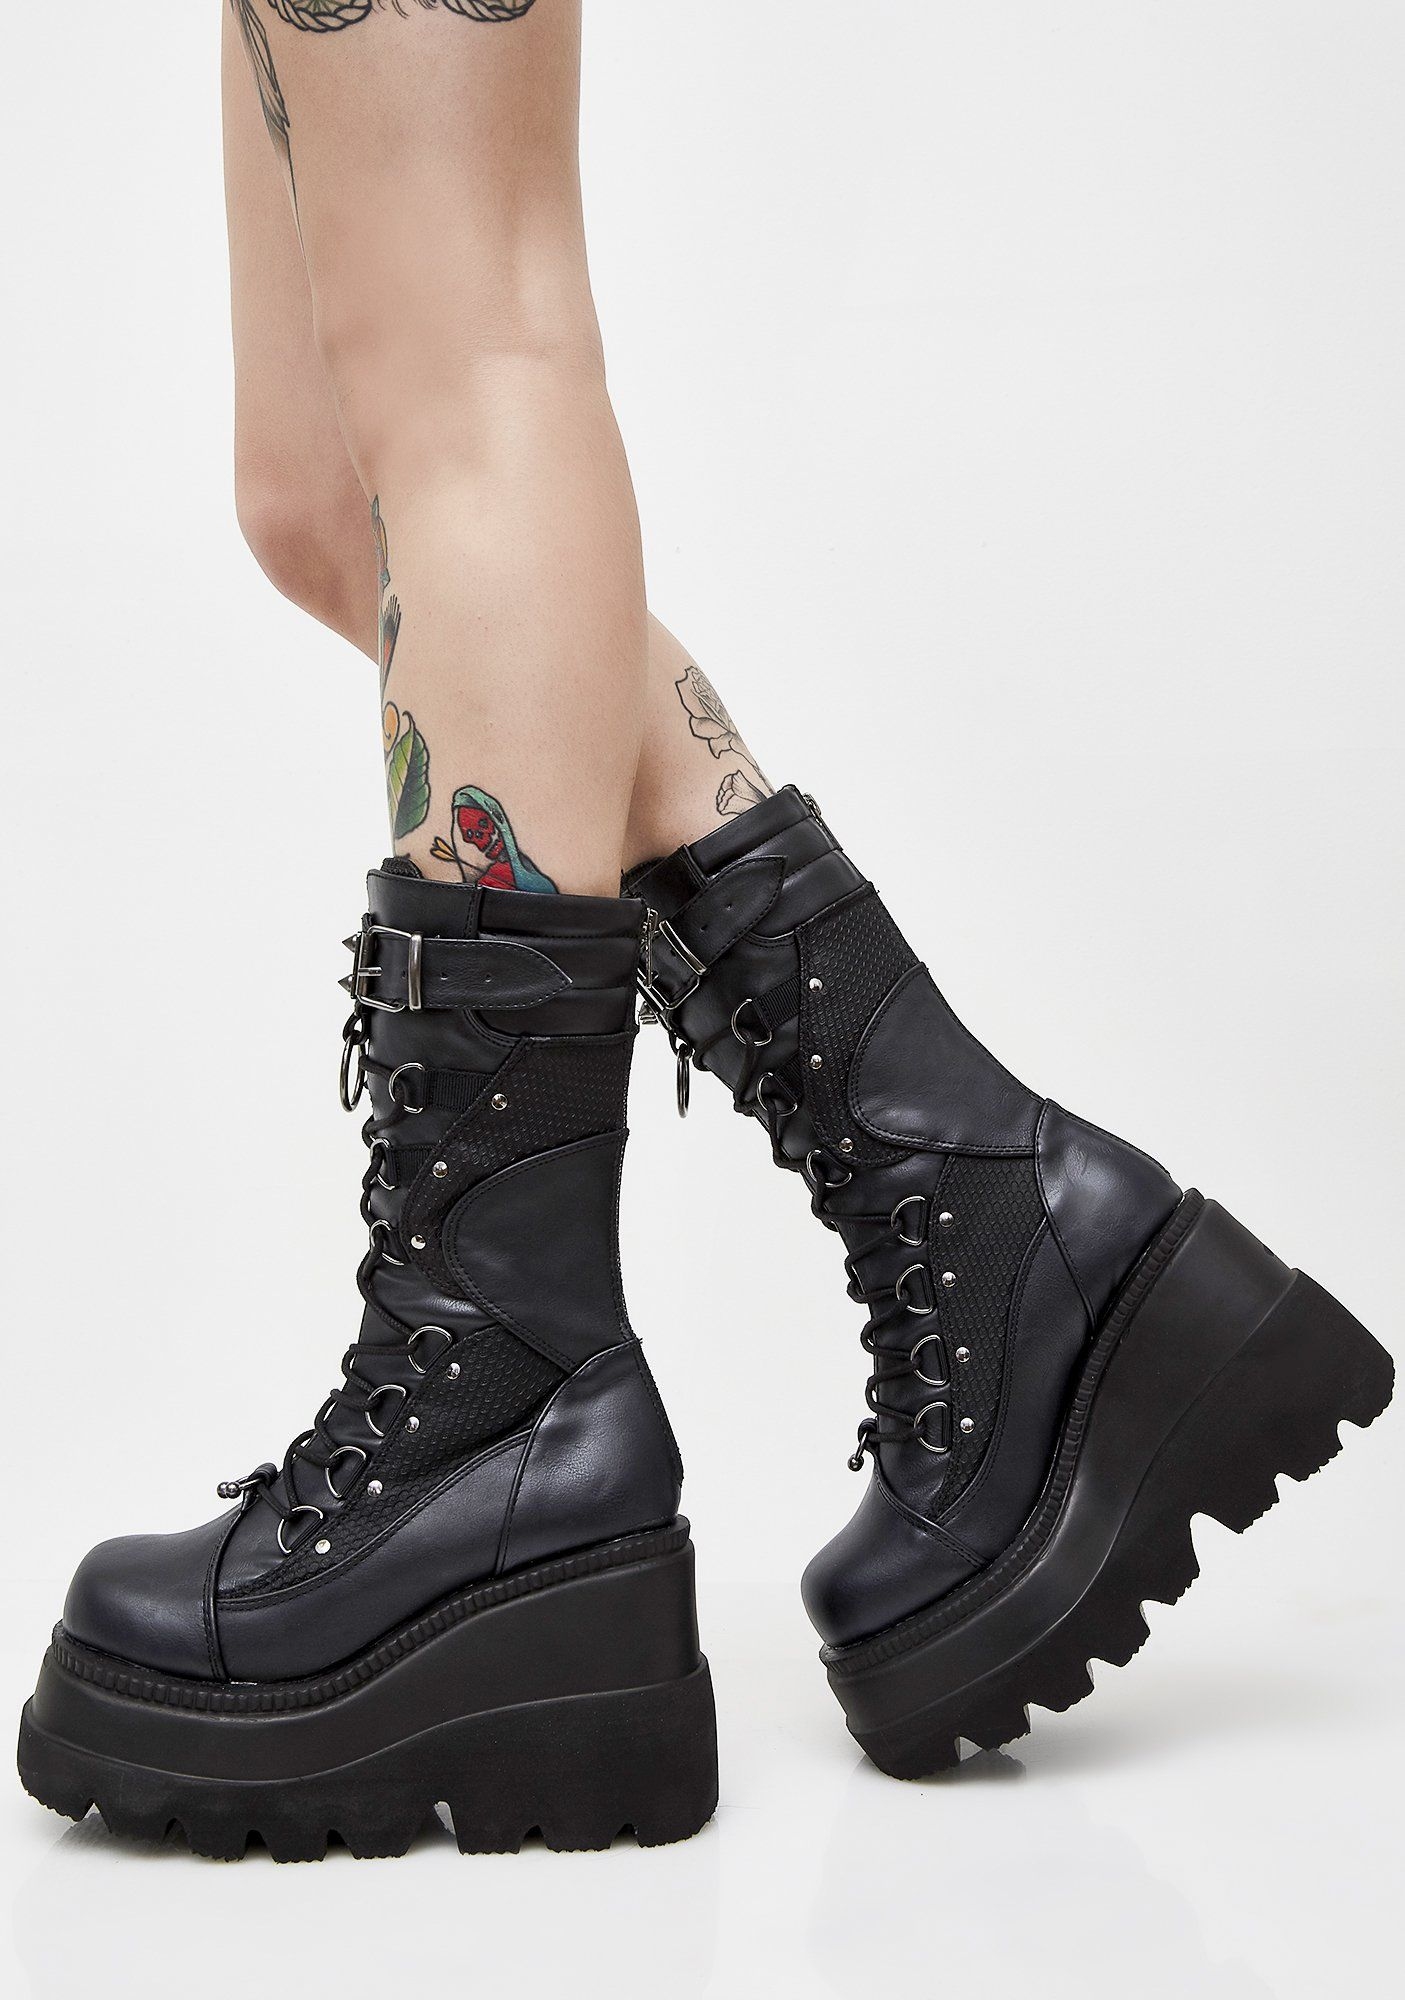 2b864f854f0 Demonia Charade 206 Black Corset Lace Up Boots in 2019 | Style ...